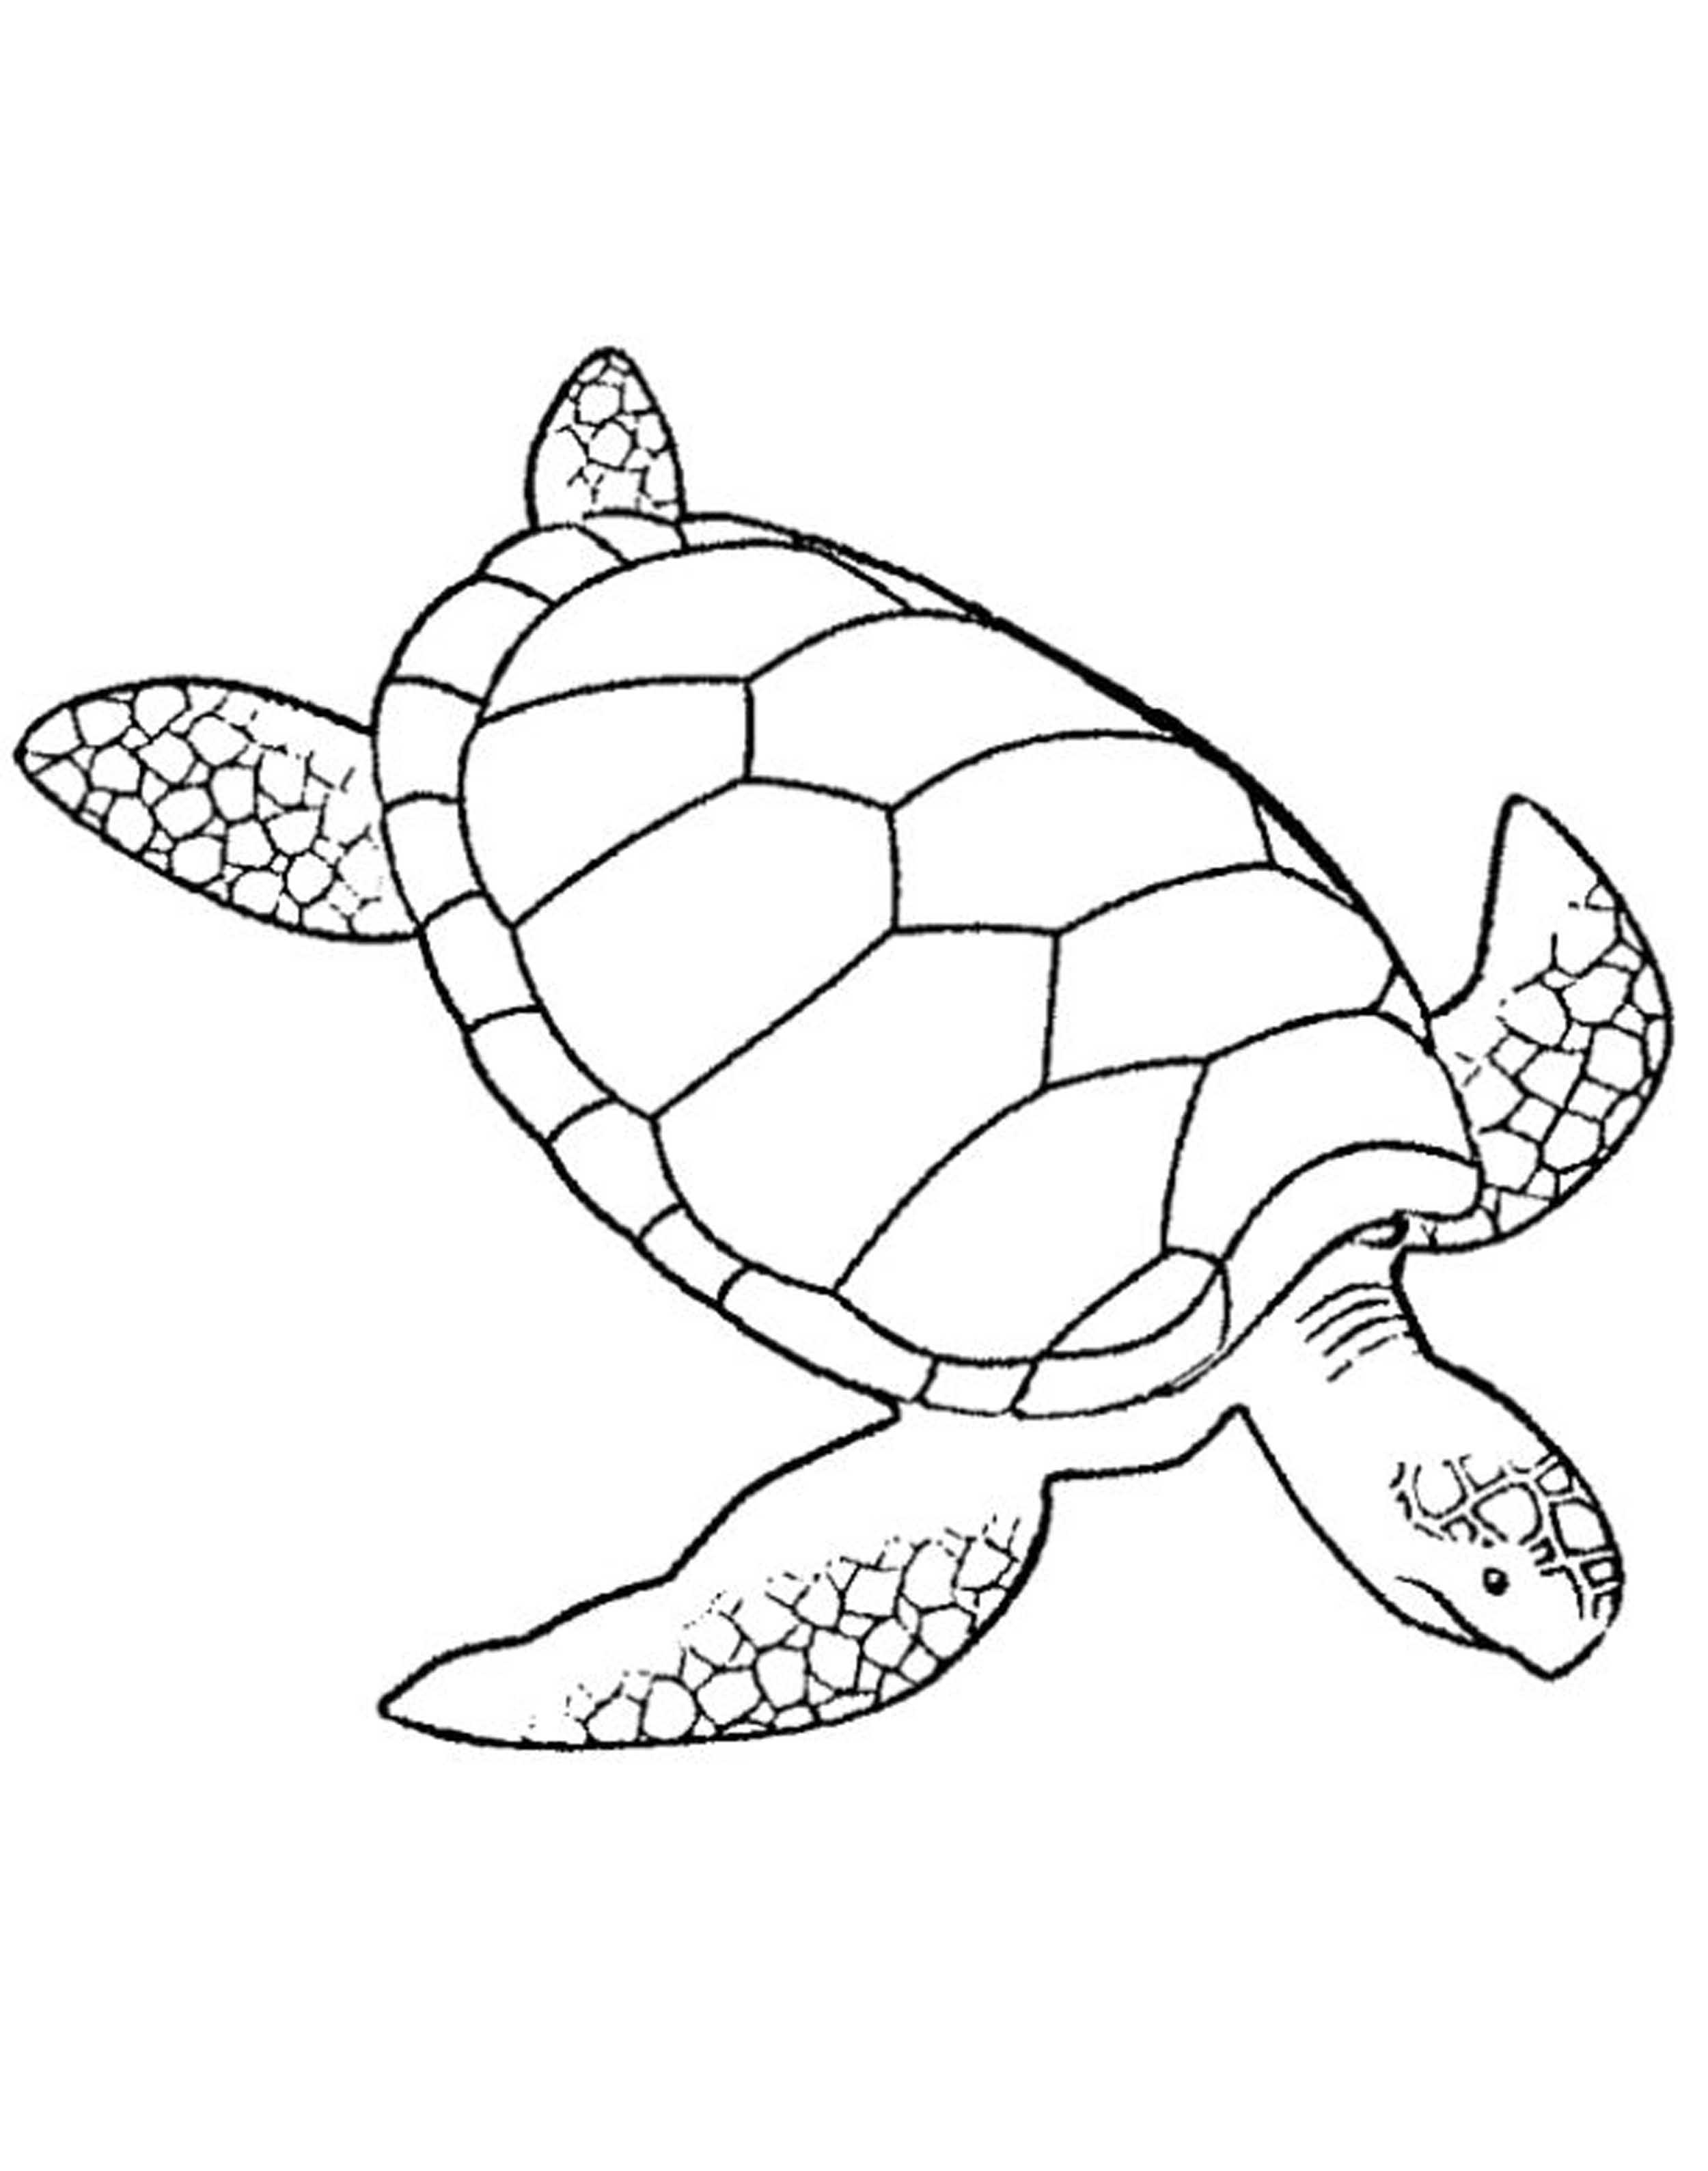 tortoise coloring page turtles to print turtles kids coloring pages page coloring tortoise